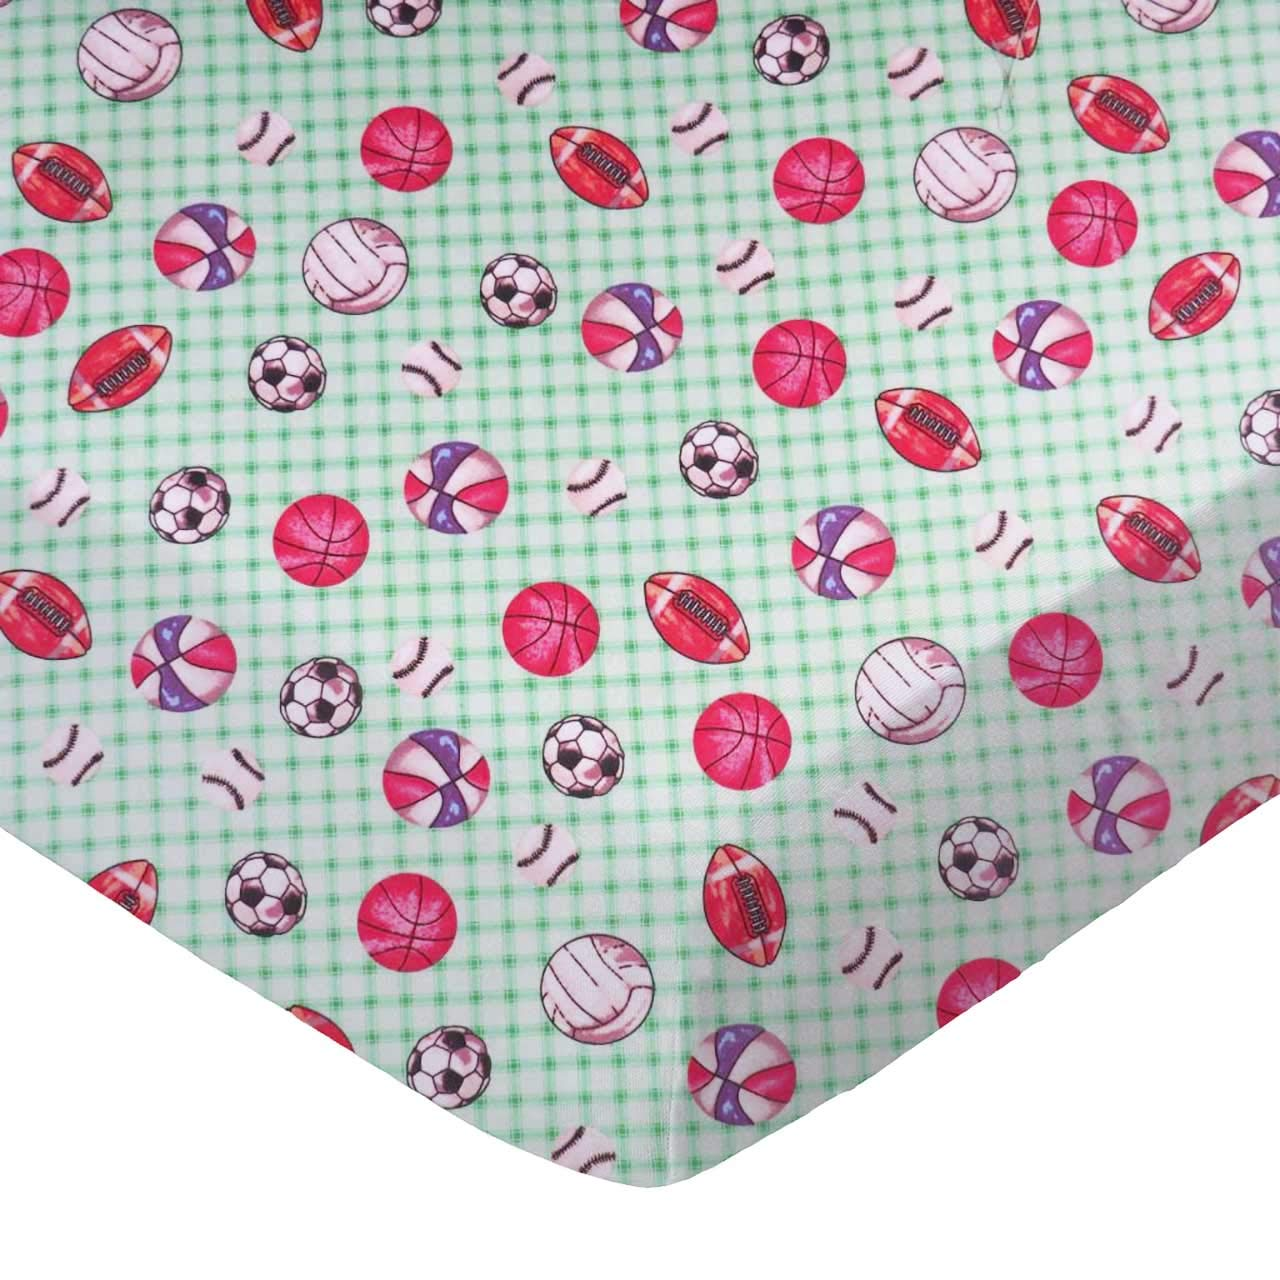 SheetWorld gift Fitted 100% Cotton Flannel Bassinet 33 x Sp price 15 Sheet